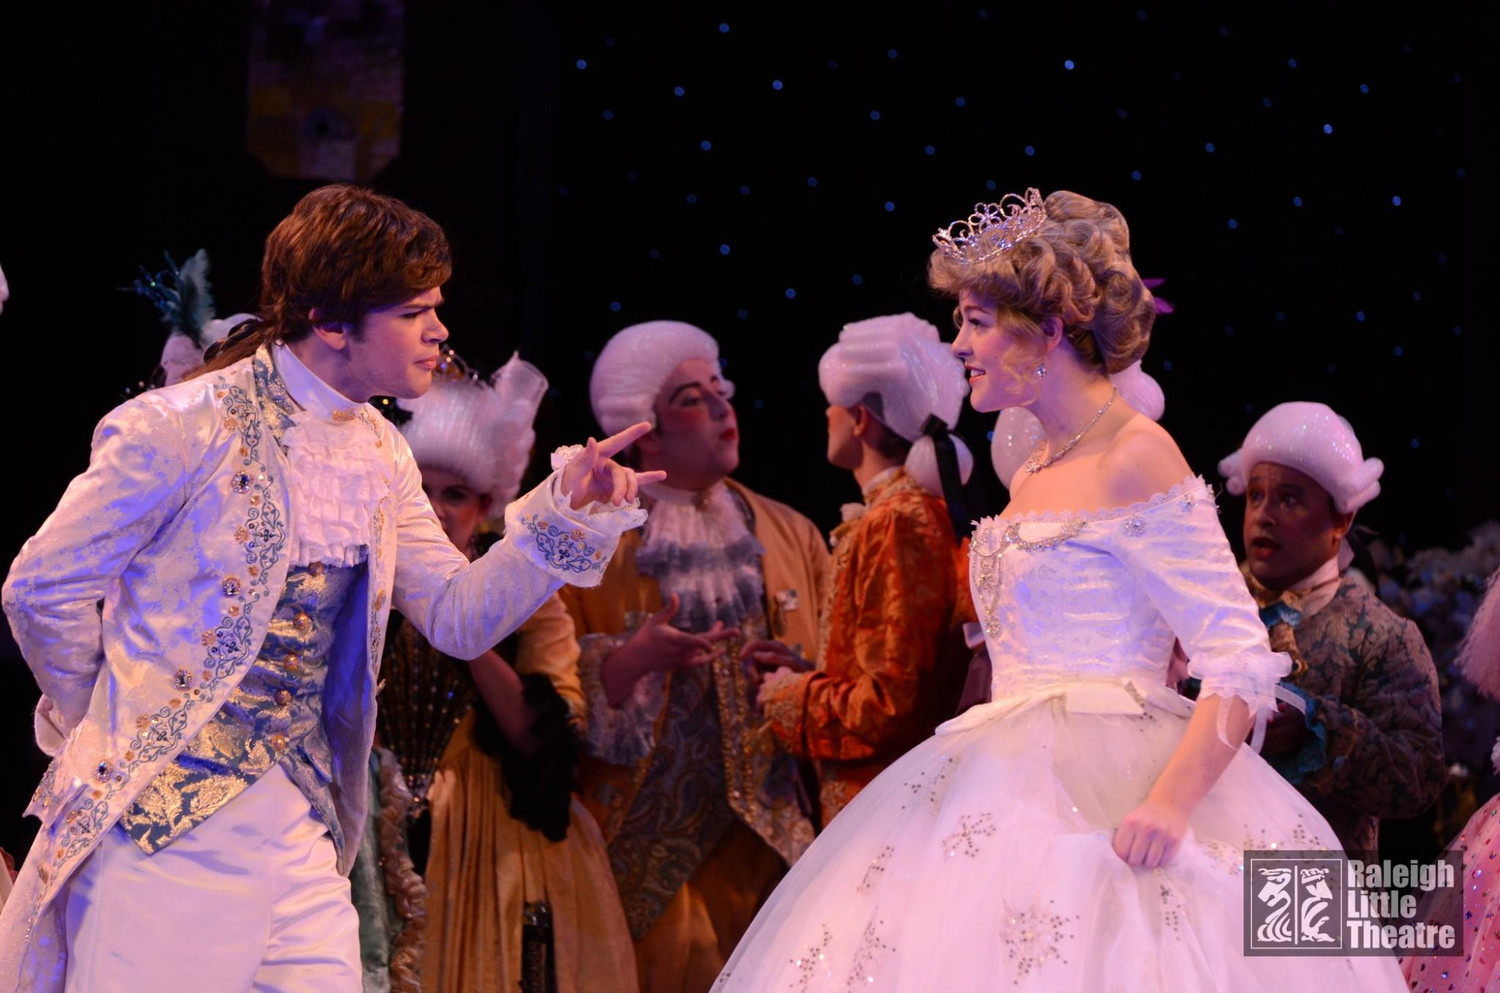 BWW Interview: Mike McGee And Lauren Knott of Raleigh Little Theatre's CINDERELLA Talk Holiday Tradition and the Importance of Family Productions